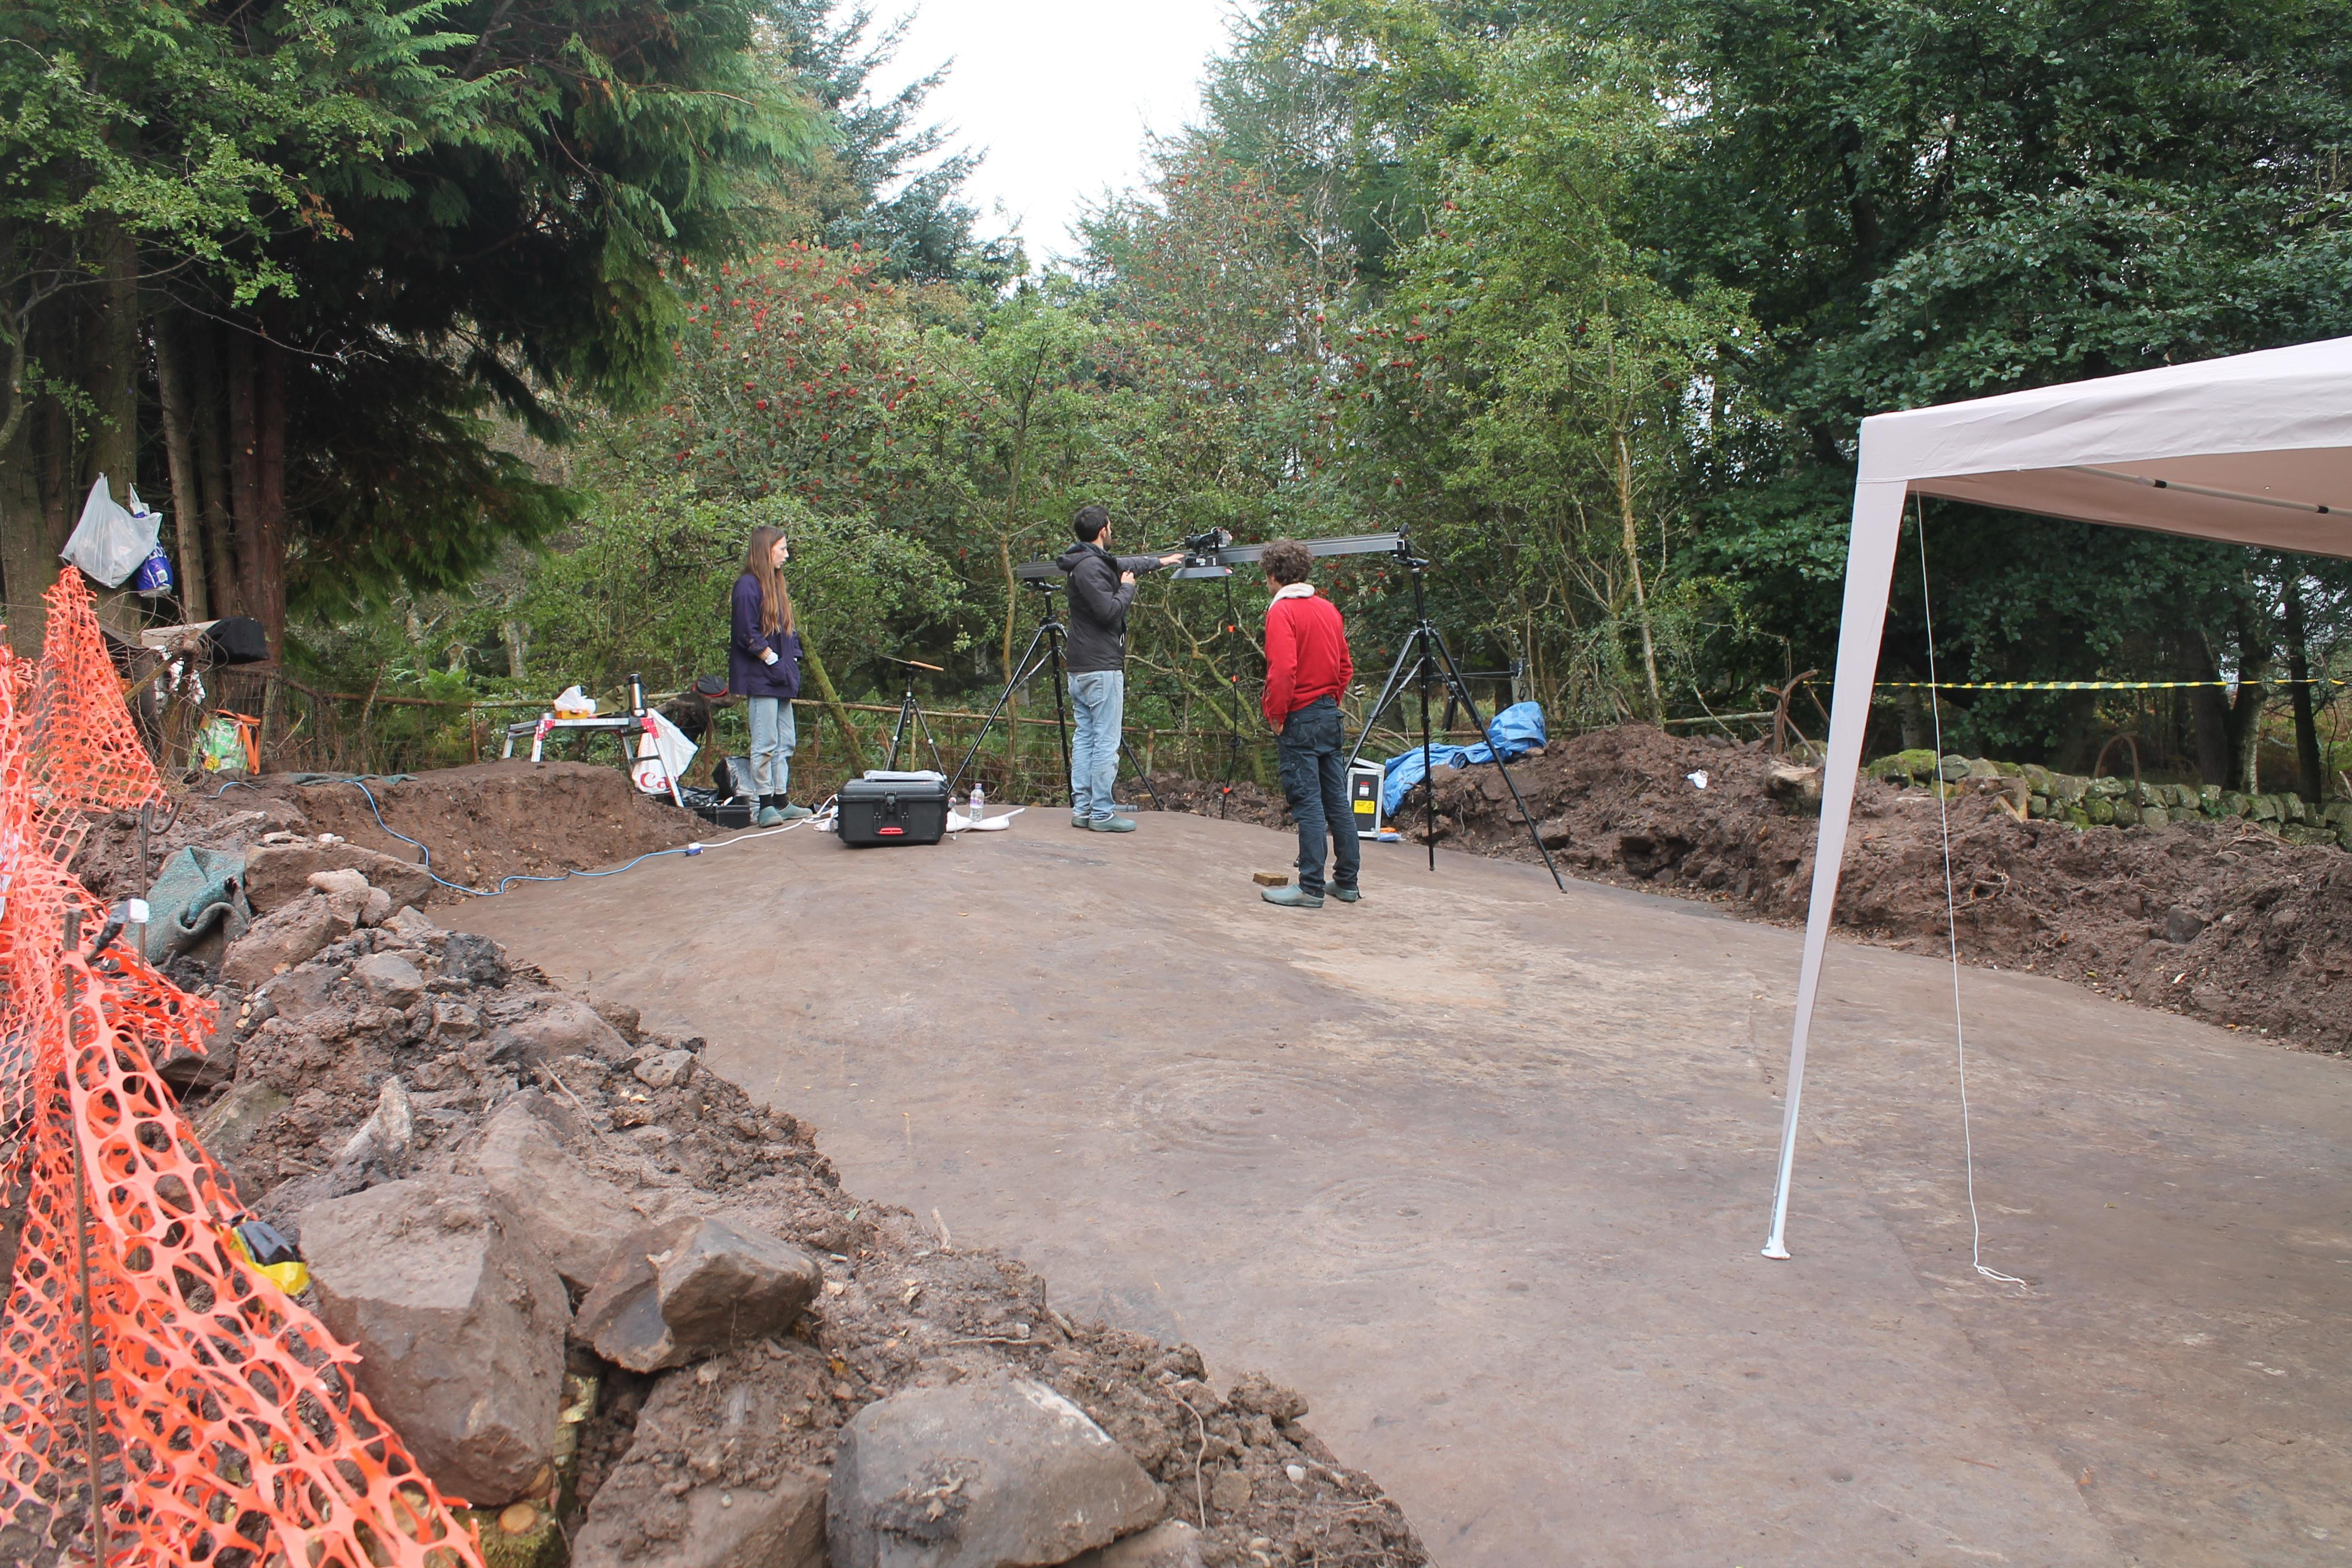 Team of Archeoligists digging for rock art in Faifley